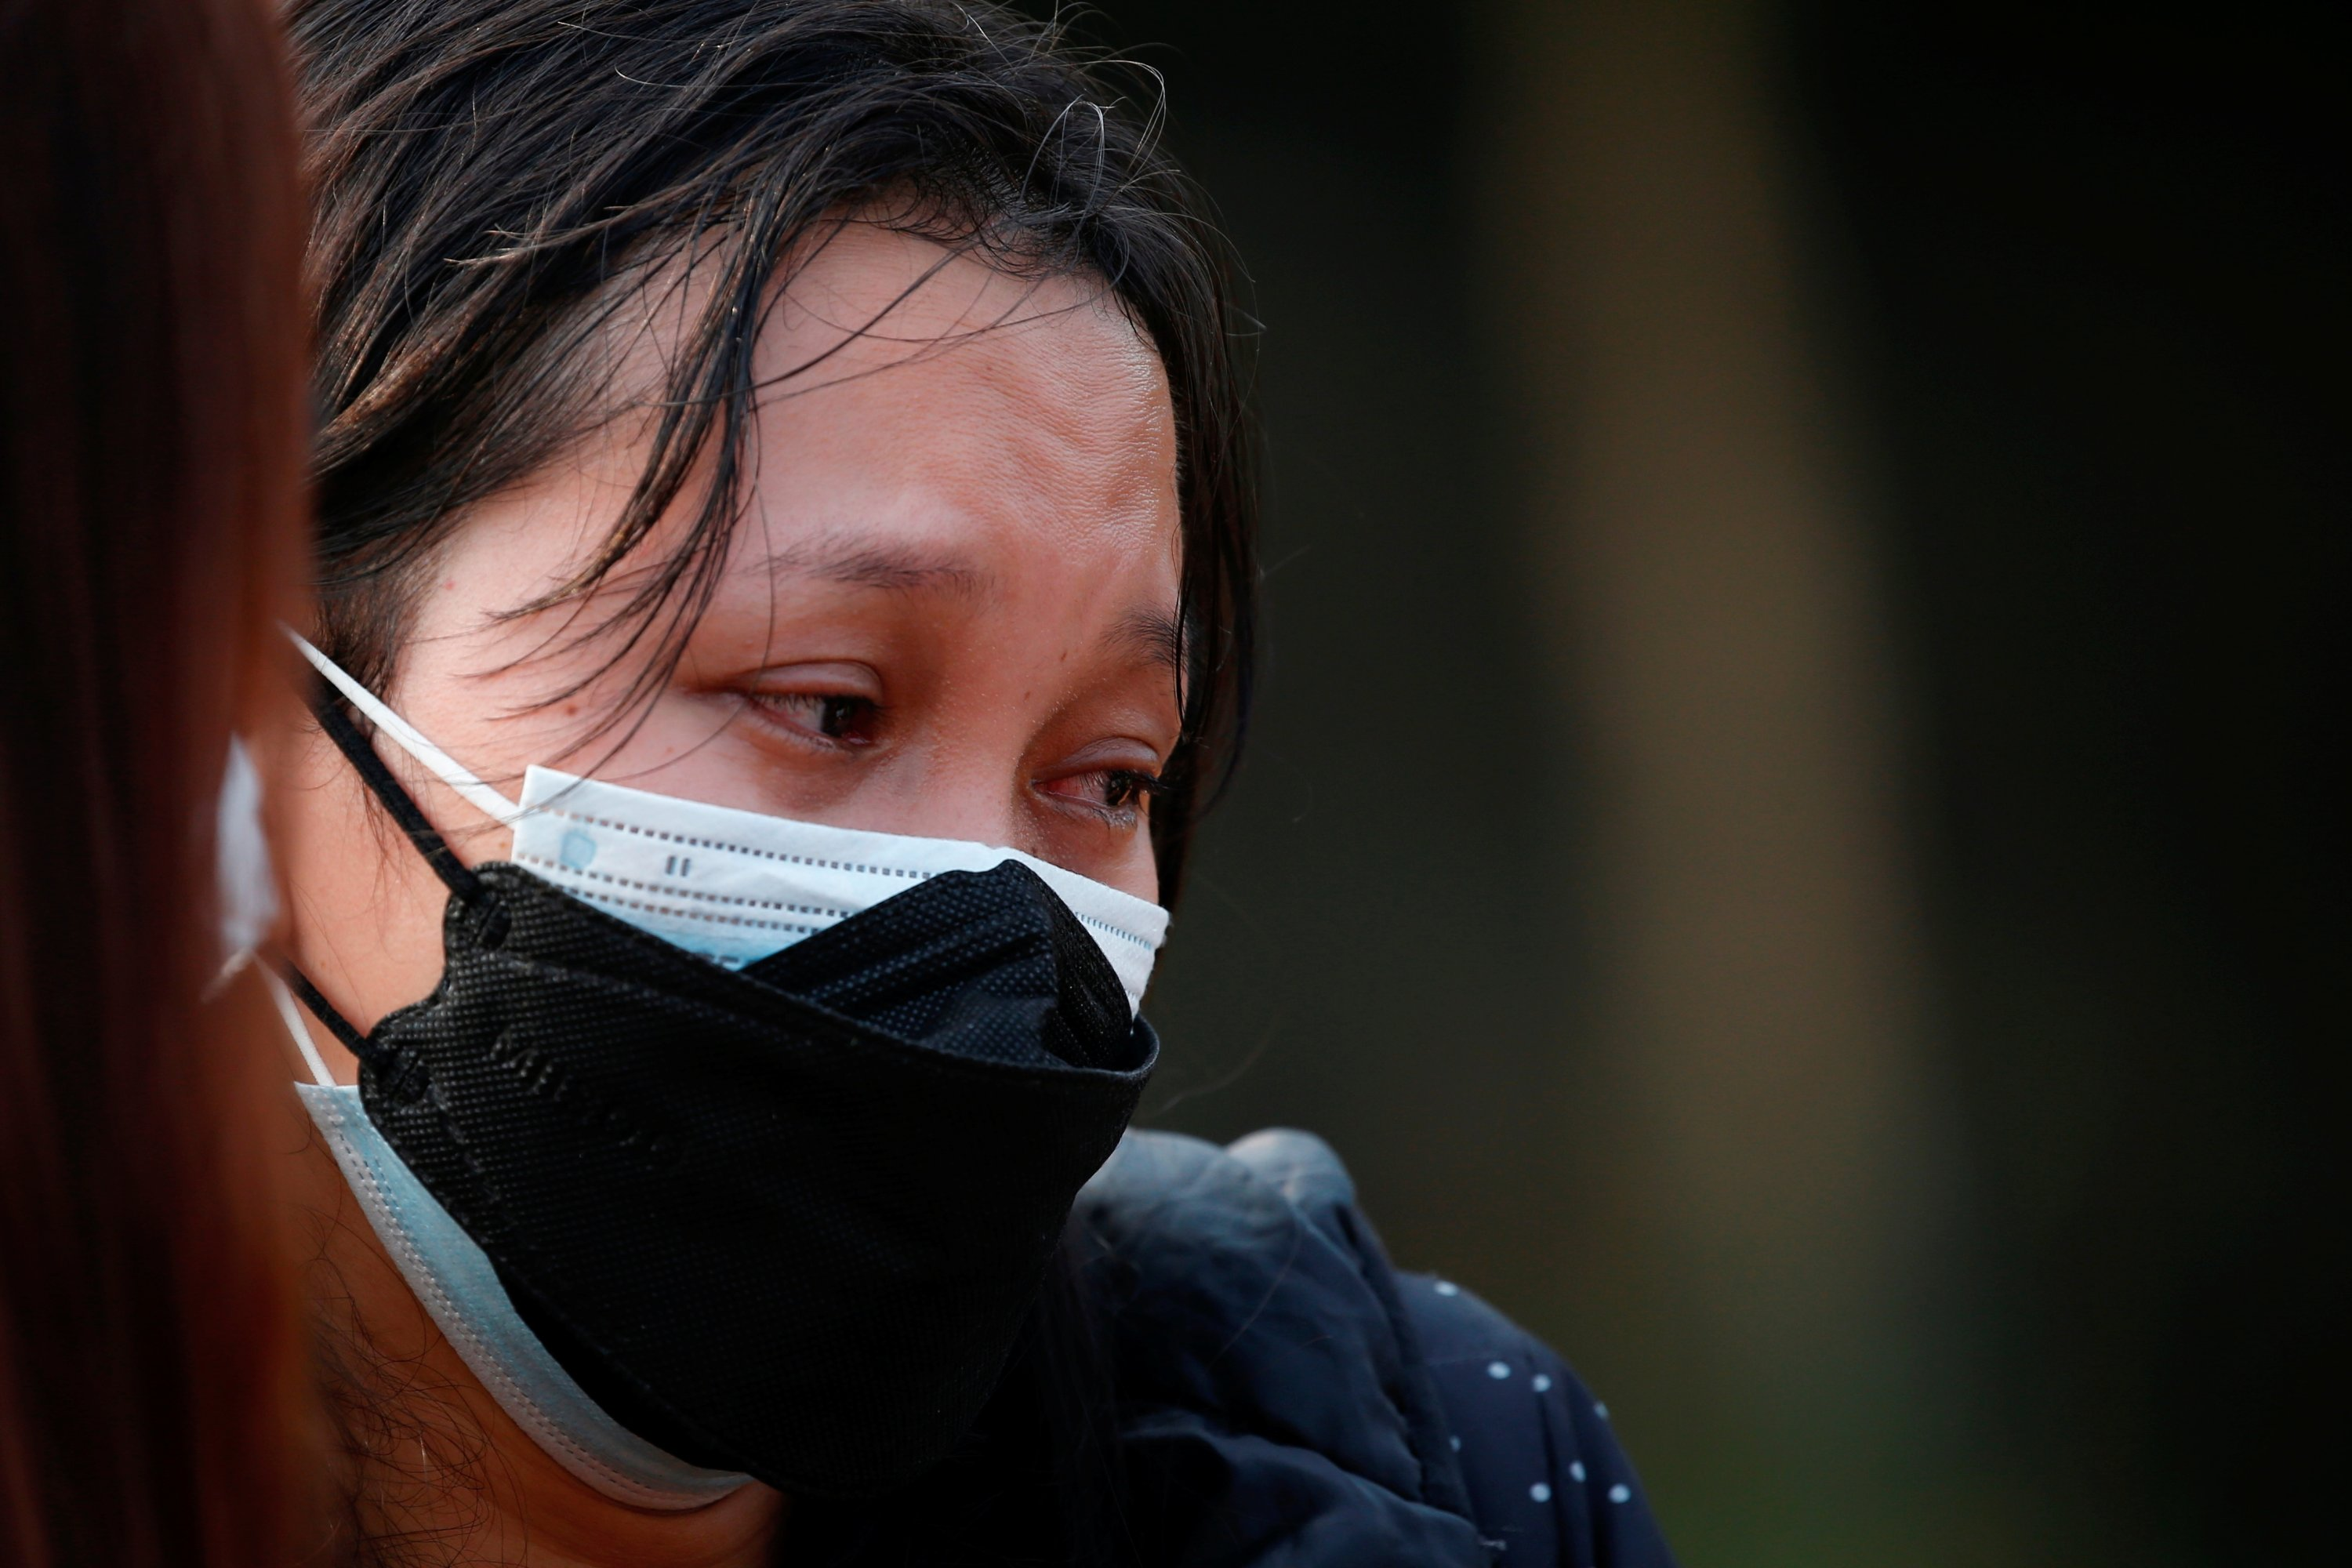 A woman cries as she attends the funeral of her 65-year-old father who passed away due to COVID-19, at a burial area provided by the government for COVID-19 victims as the case surges, in Bekasi, on the outskirts of Jakarta, Indonesia, July 15, 2021. (Reuters Photo)